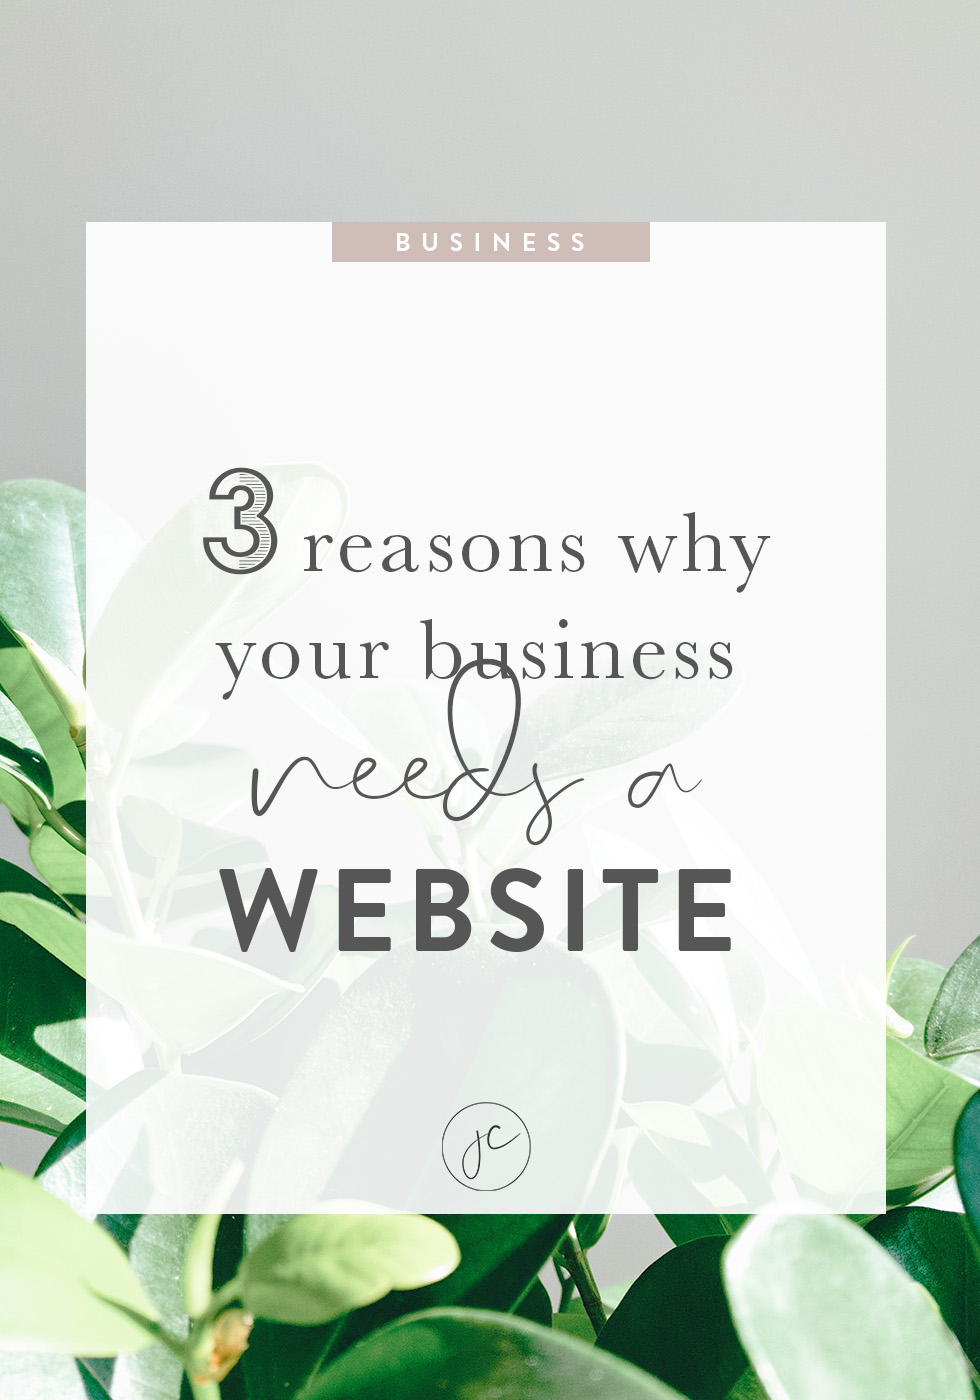 3 Reasons Why Your Business Needs a Website